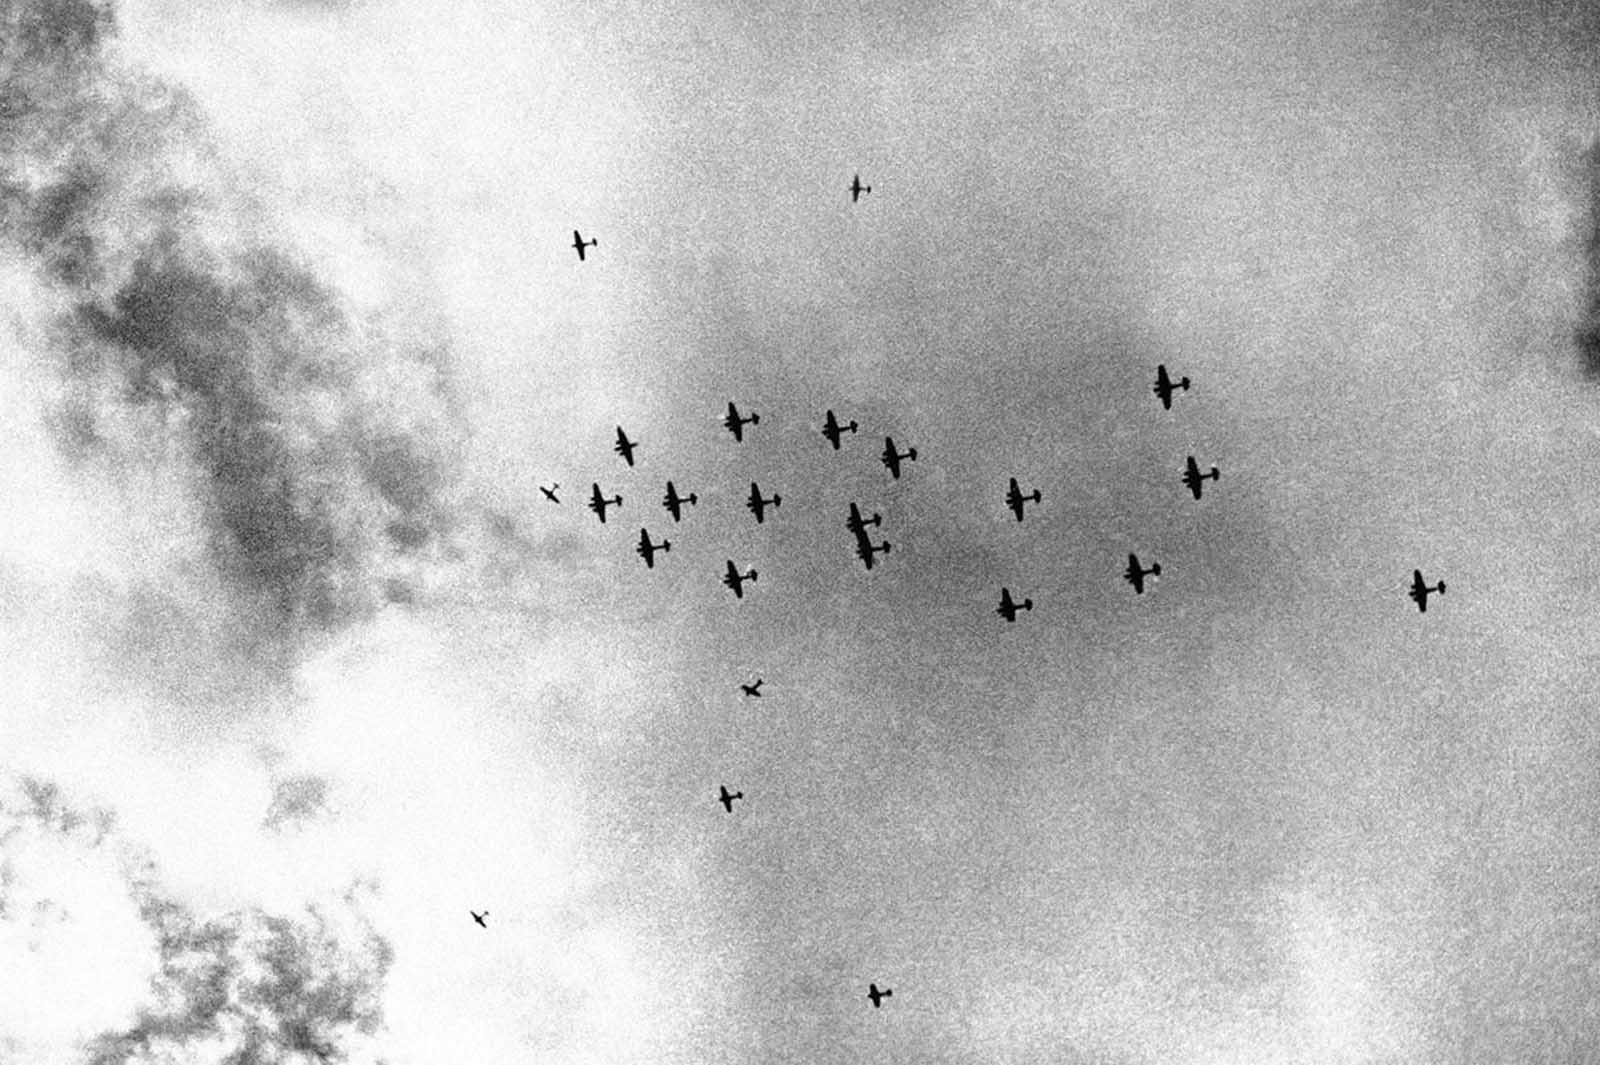 British Blenheim bombers setting out on a raid in Cyrenaica, Libya, with their escorting fighters, on February 26, 1942.